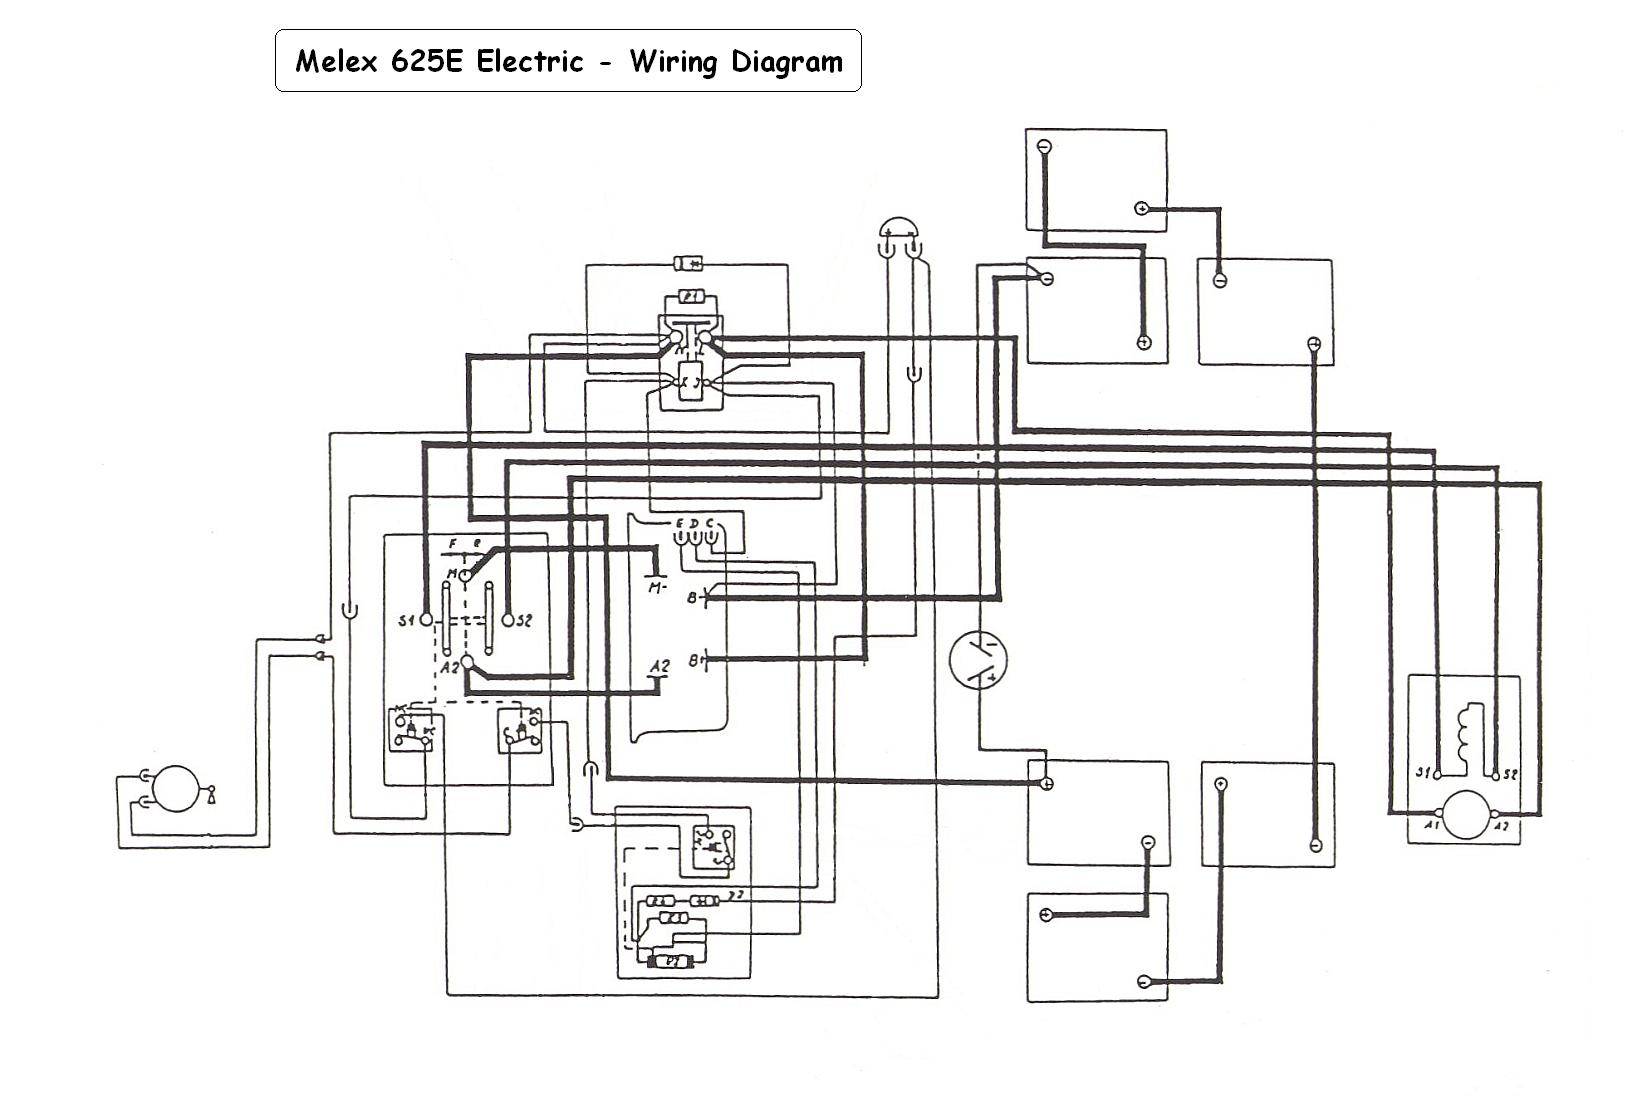 melex golf cart wiring diagram wiring diagram 1999 Melex Golf Cart Battery Wiring Diagram melex 36 volt golf cart wiring diagram